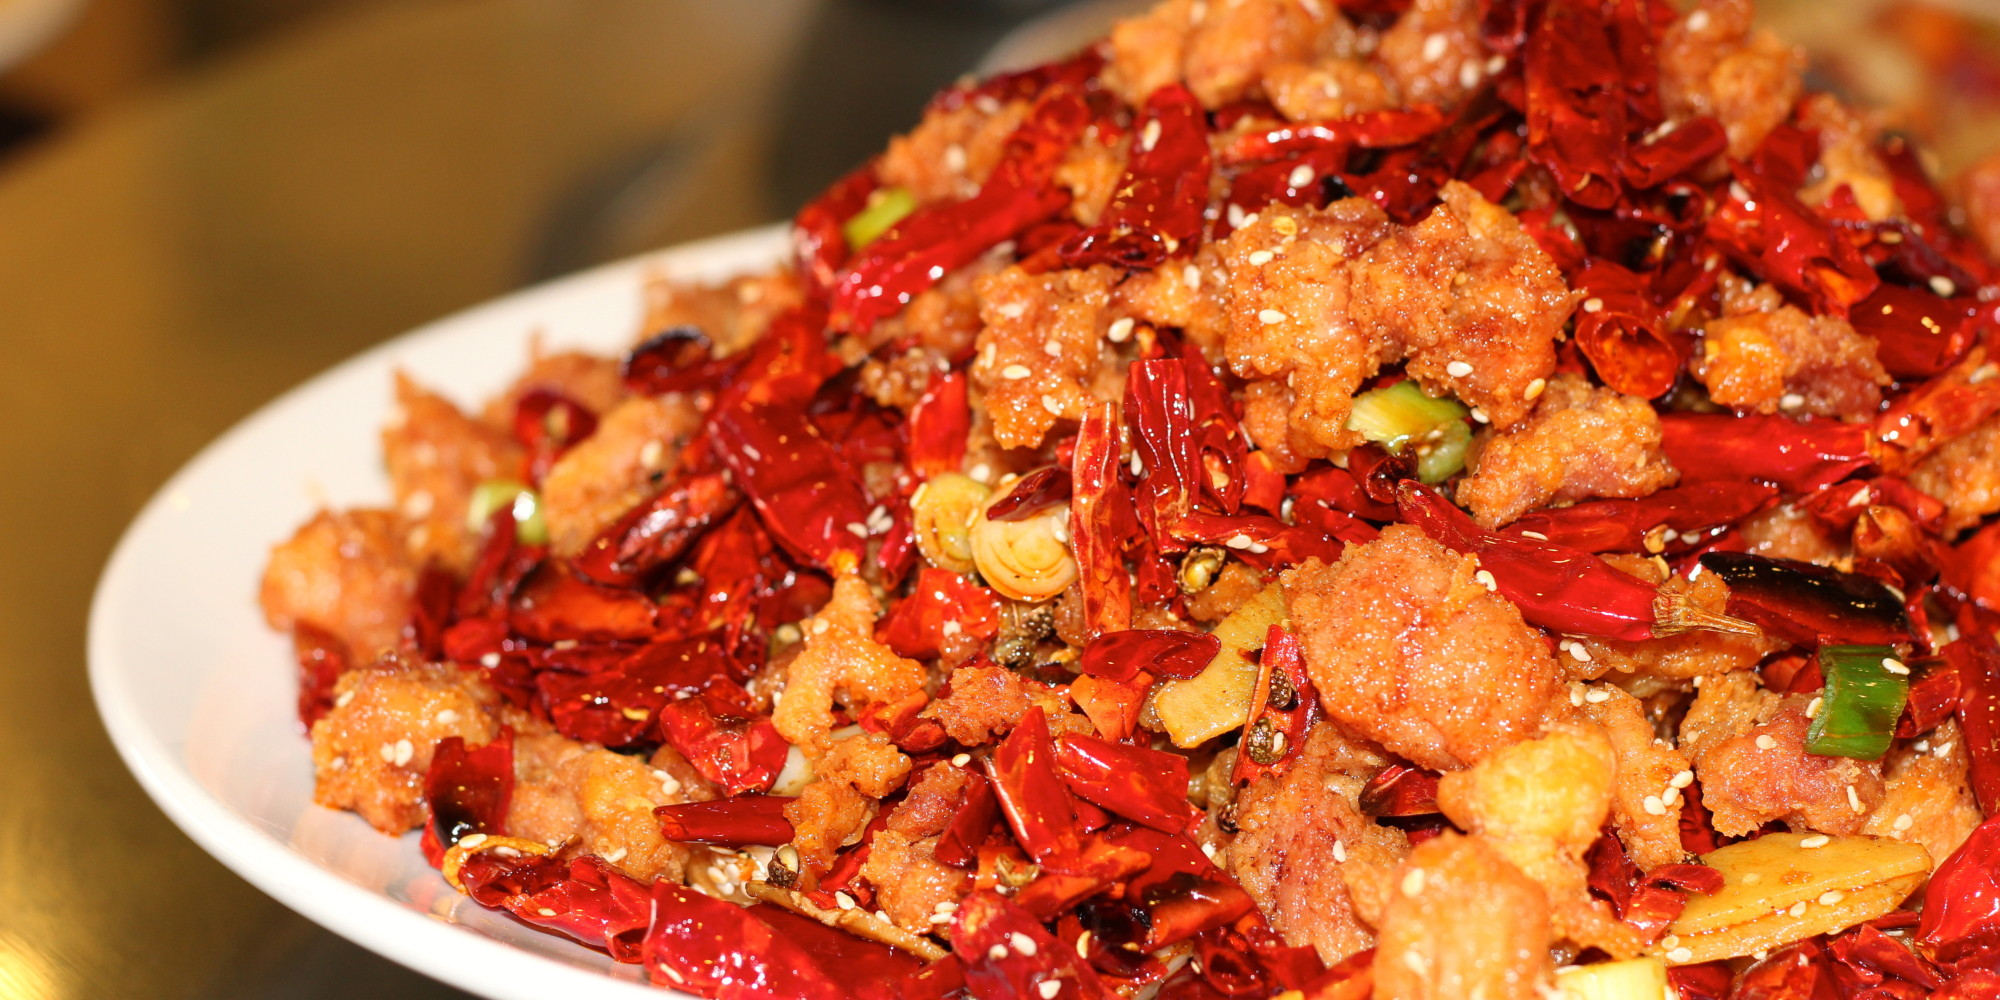 Cuisine Spicy A Tongue Tingling Tour Of Spicy Chinese Food In California